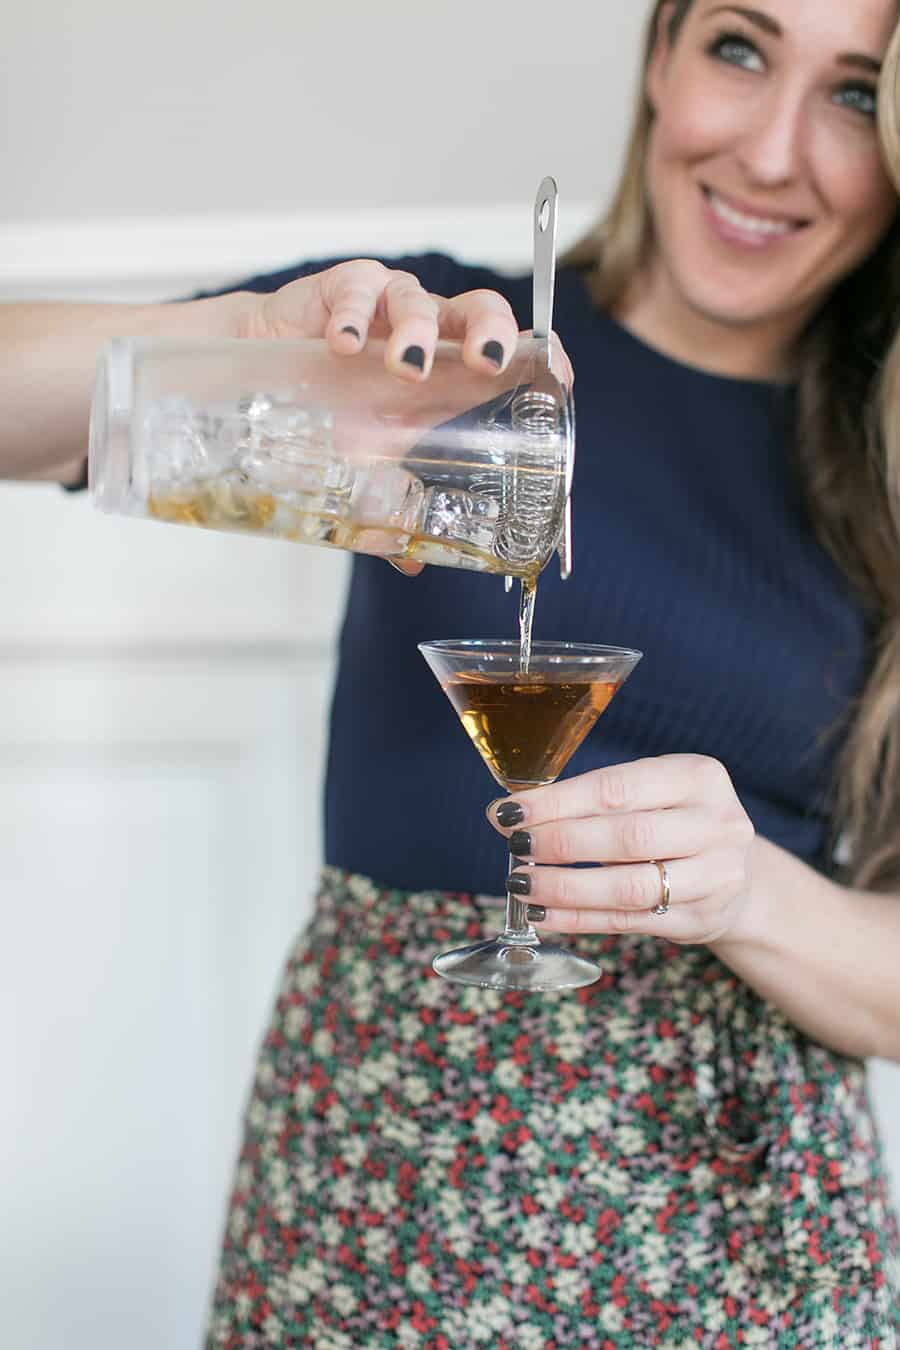 Eden Passante pouring Bénédictine cocktail into a glass.